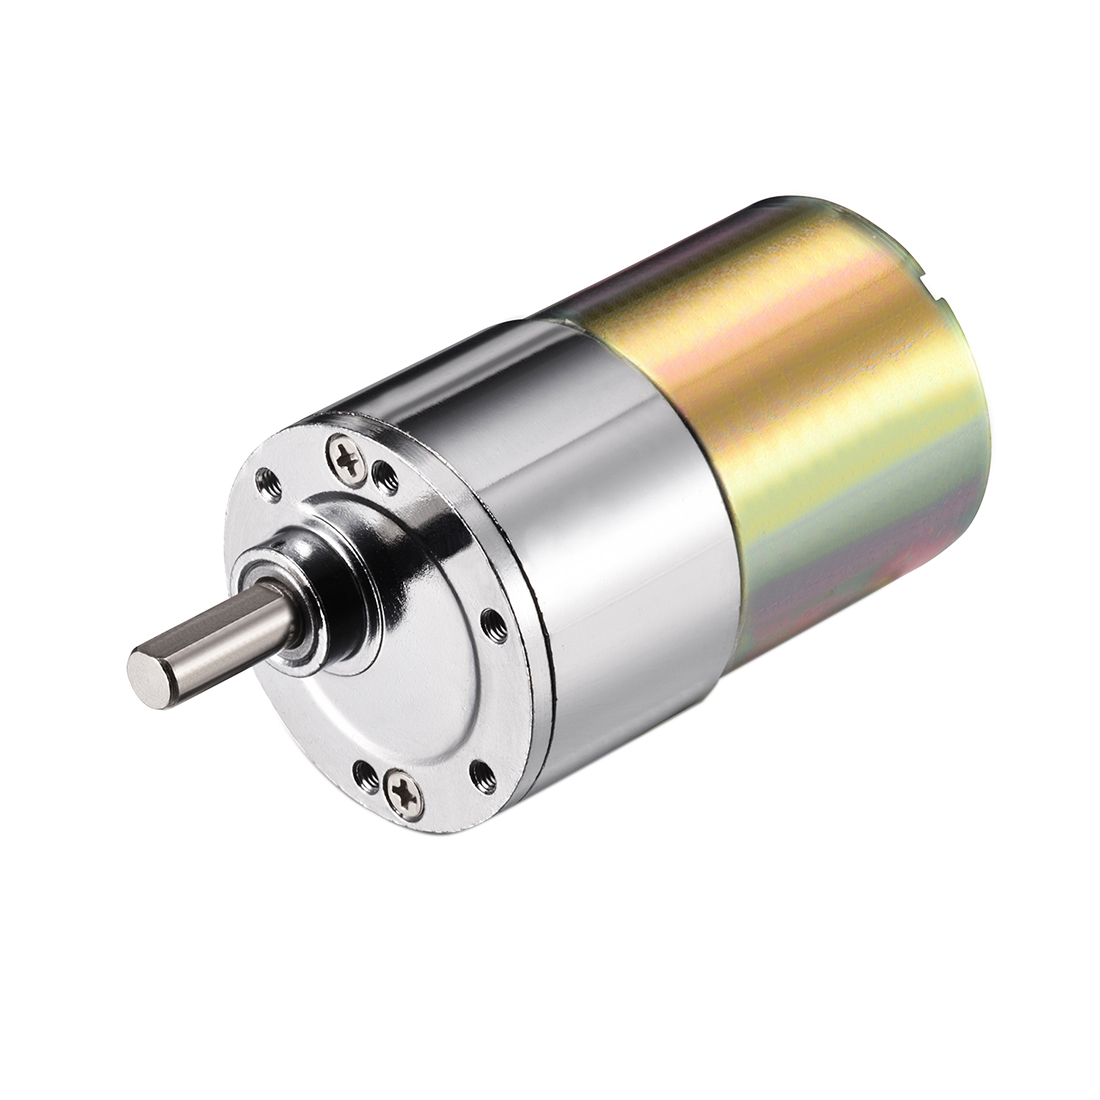 DC 12V 30RPM Micro Gear Box Motor Speed Reduction Gearbox Eccentric Output Shaft